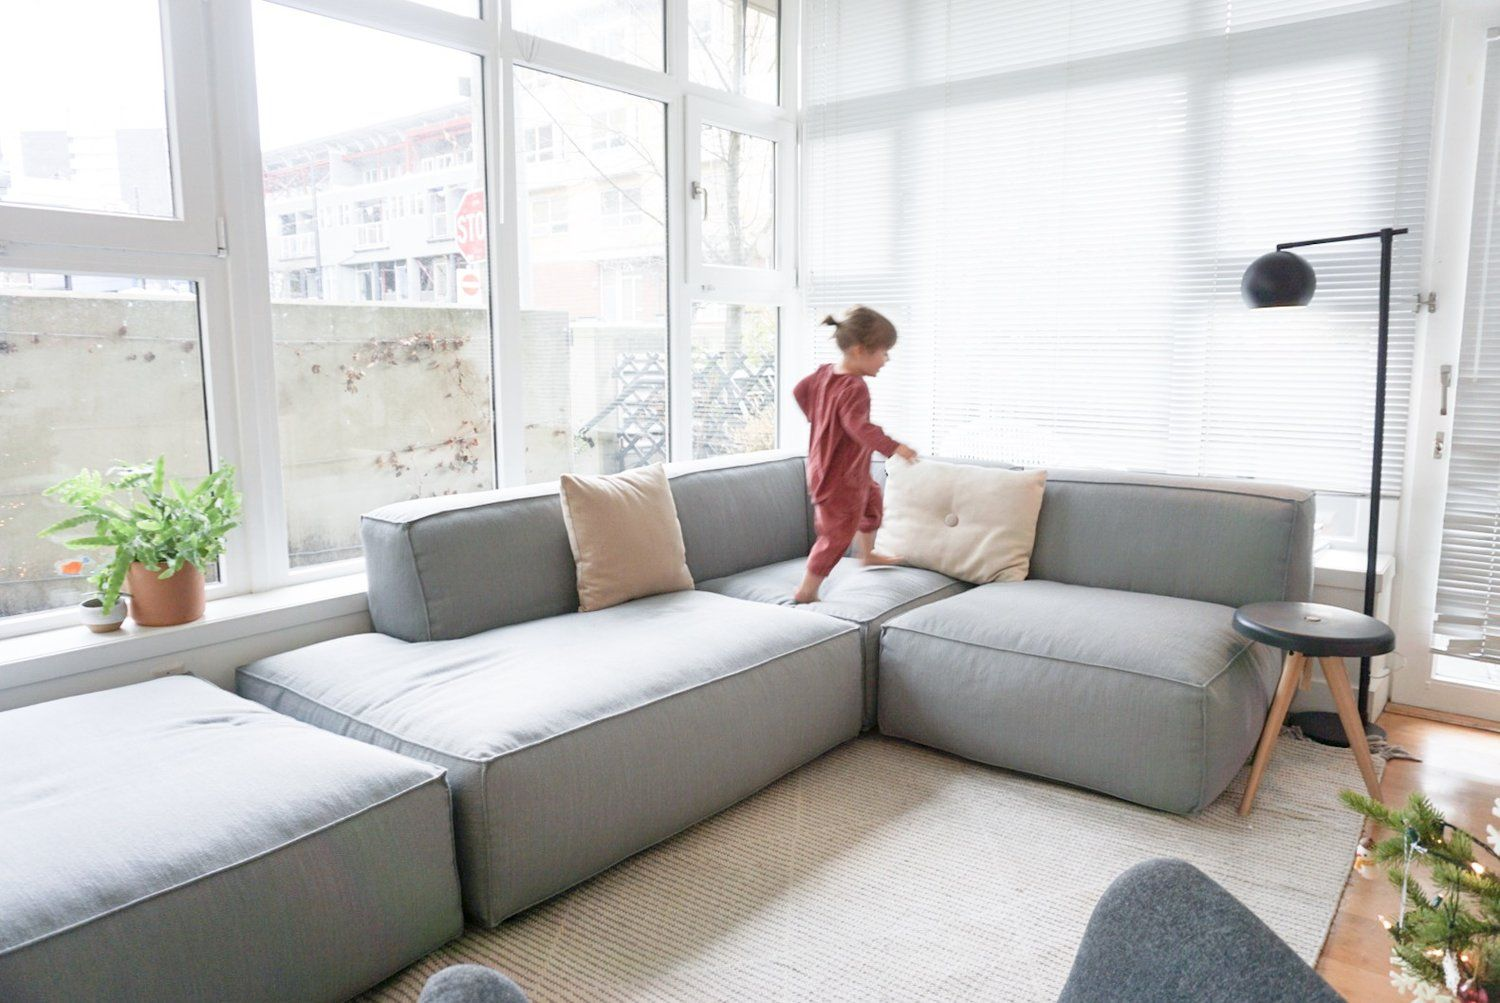 A Modular Sofa For Our Small Space 600sqftandababy Sofas For Small Spaces Small Space Living Room Modular Sofa